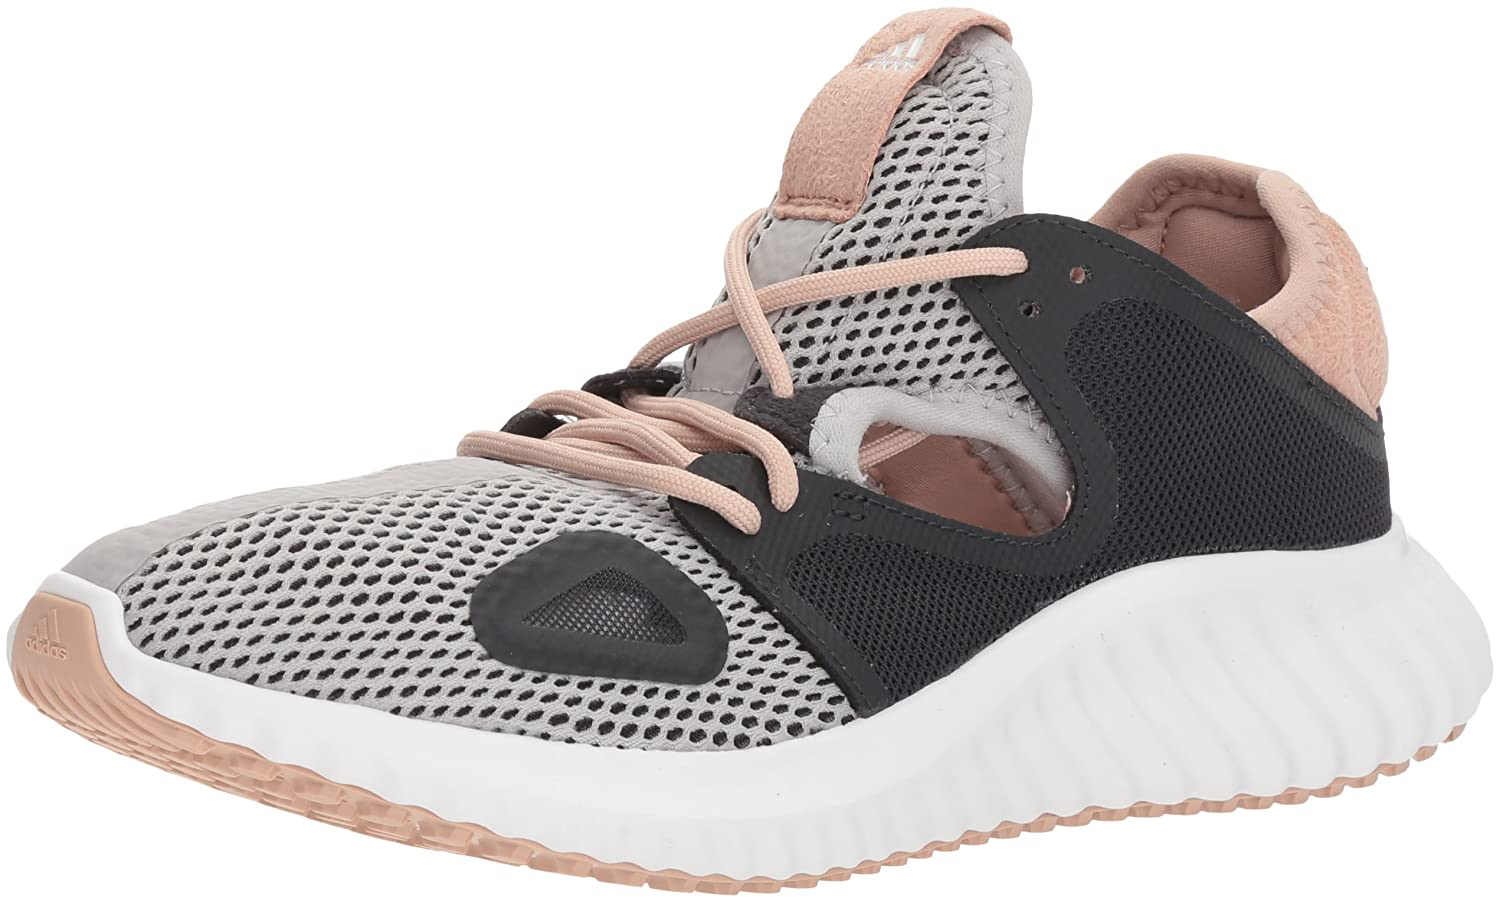 adidas Women's Lux Clima w Running Shoe B075R871K9 12 B(M) US|Grey Two Fabric, Carbon S, Ash Pearl S